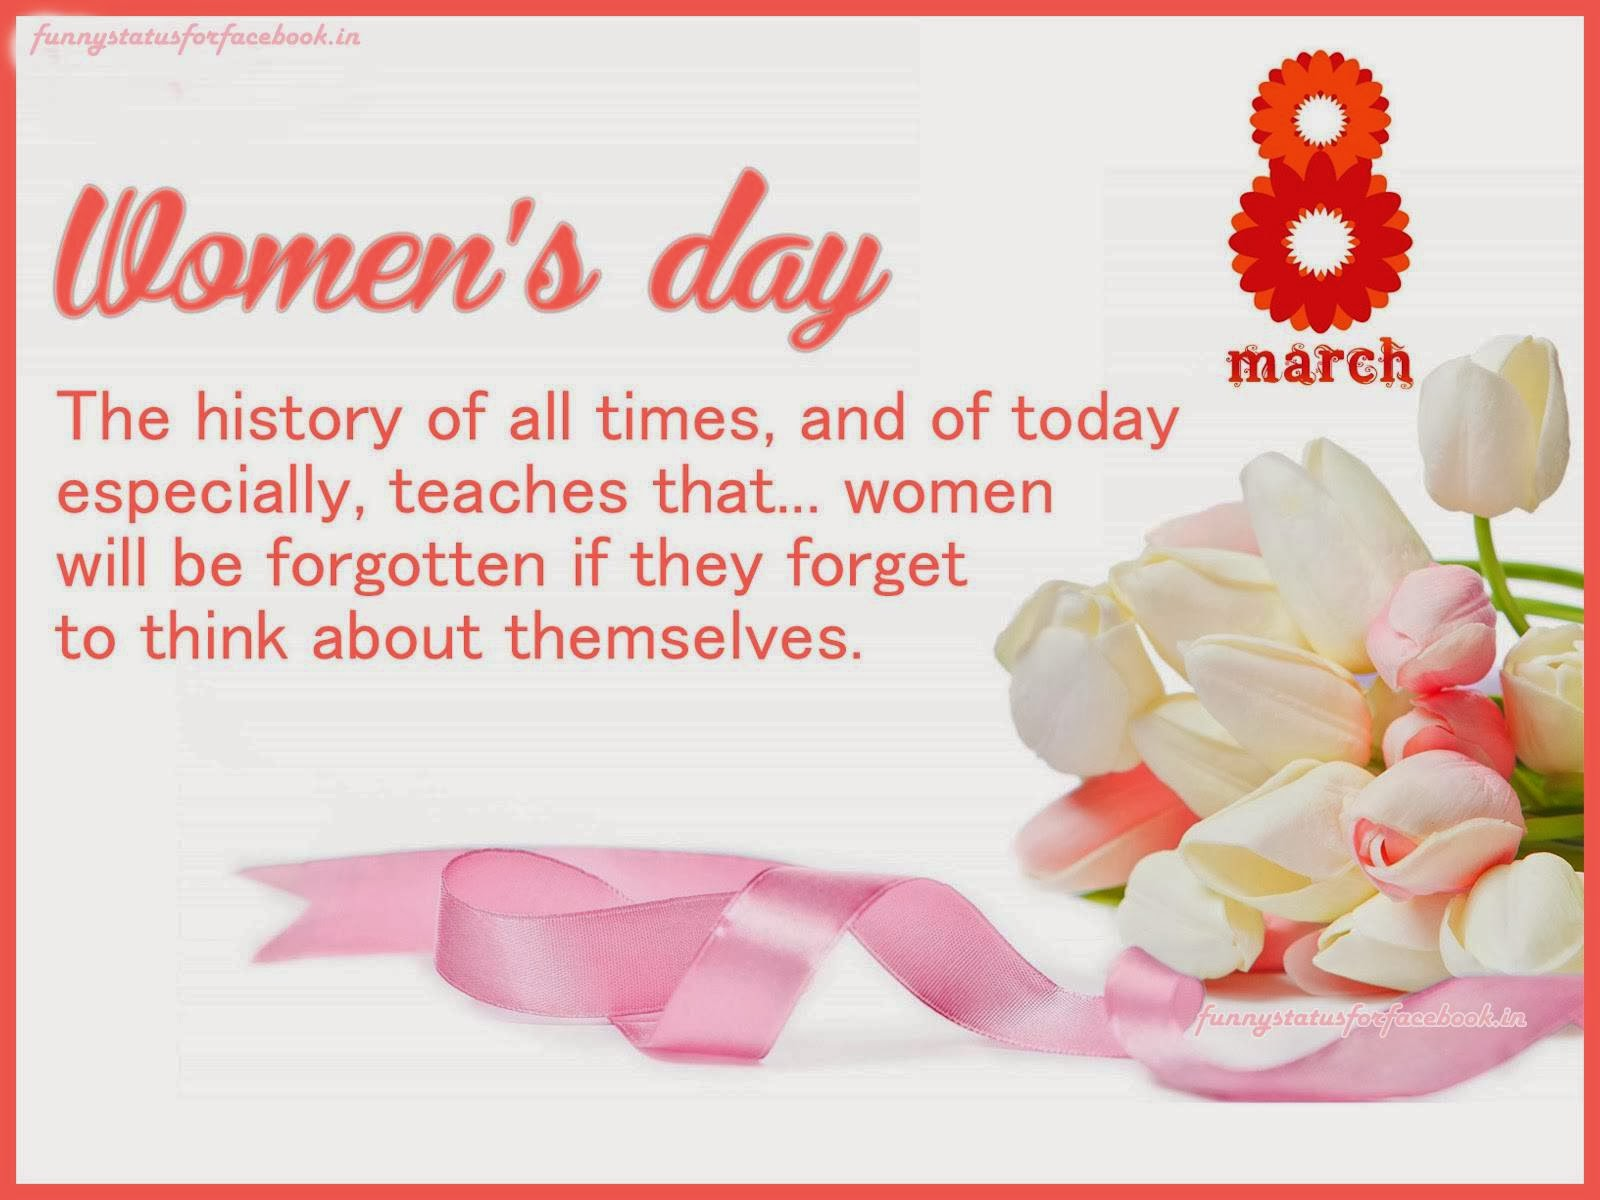 Happy International Women's Day Wishes and Greetings Message Card Image SMS Photo